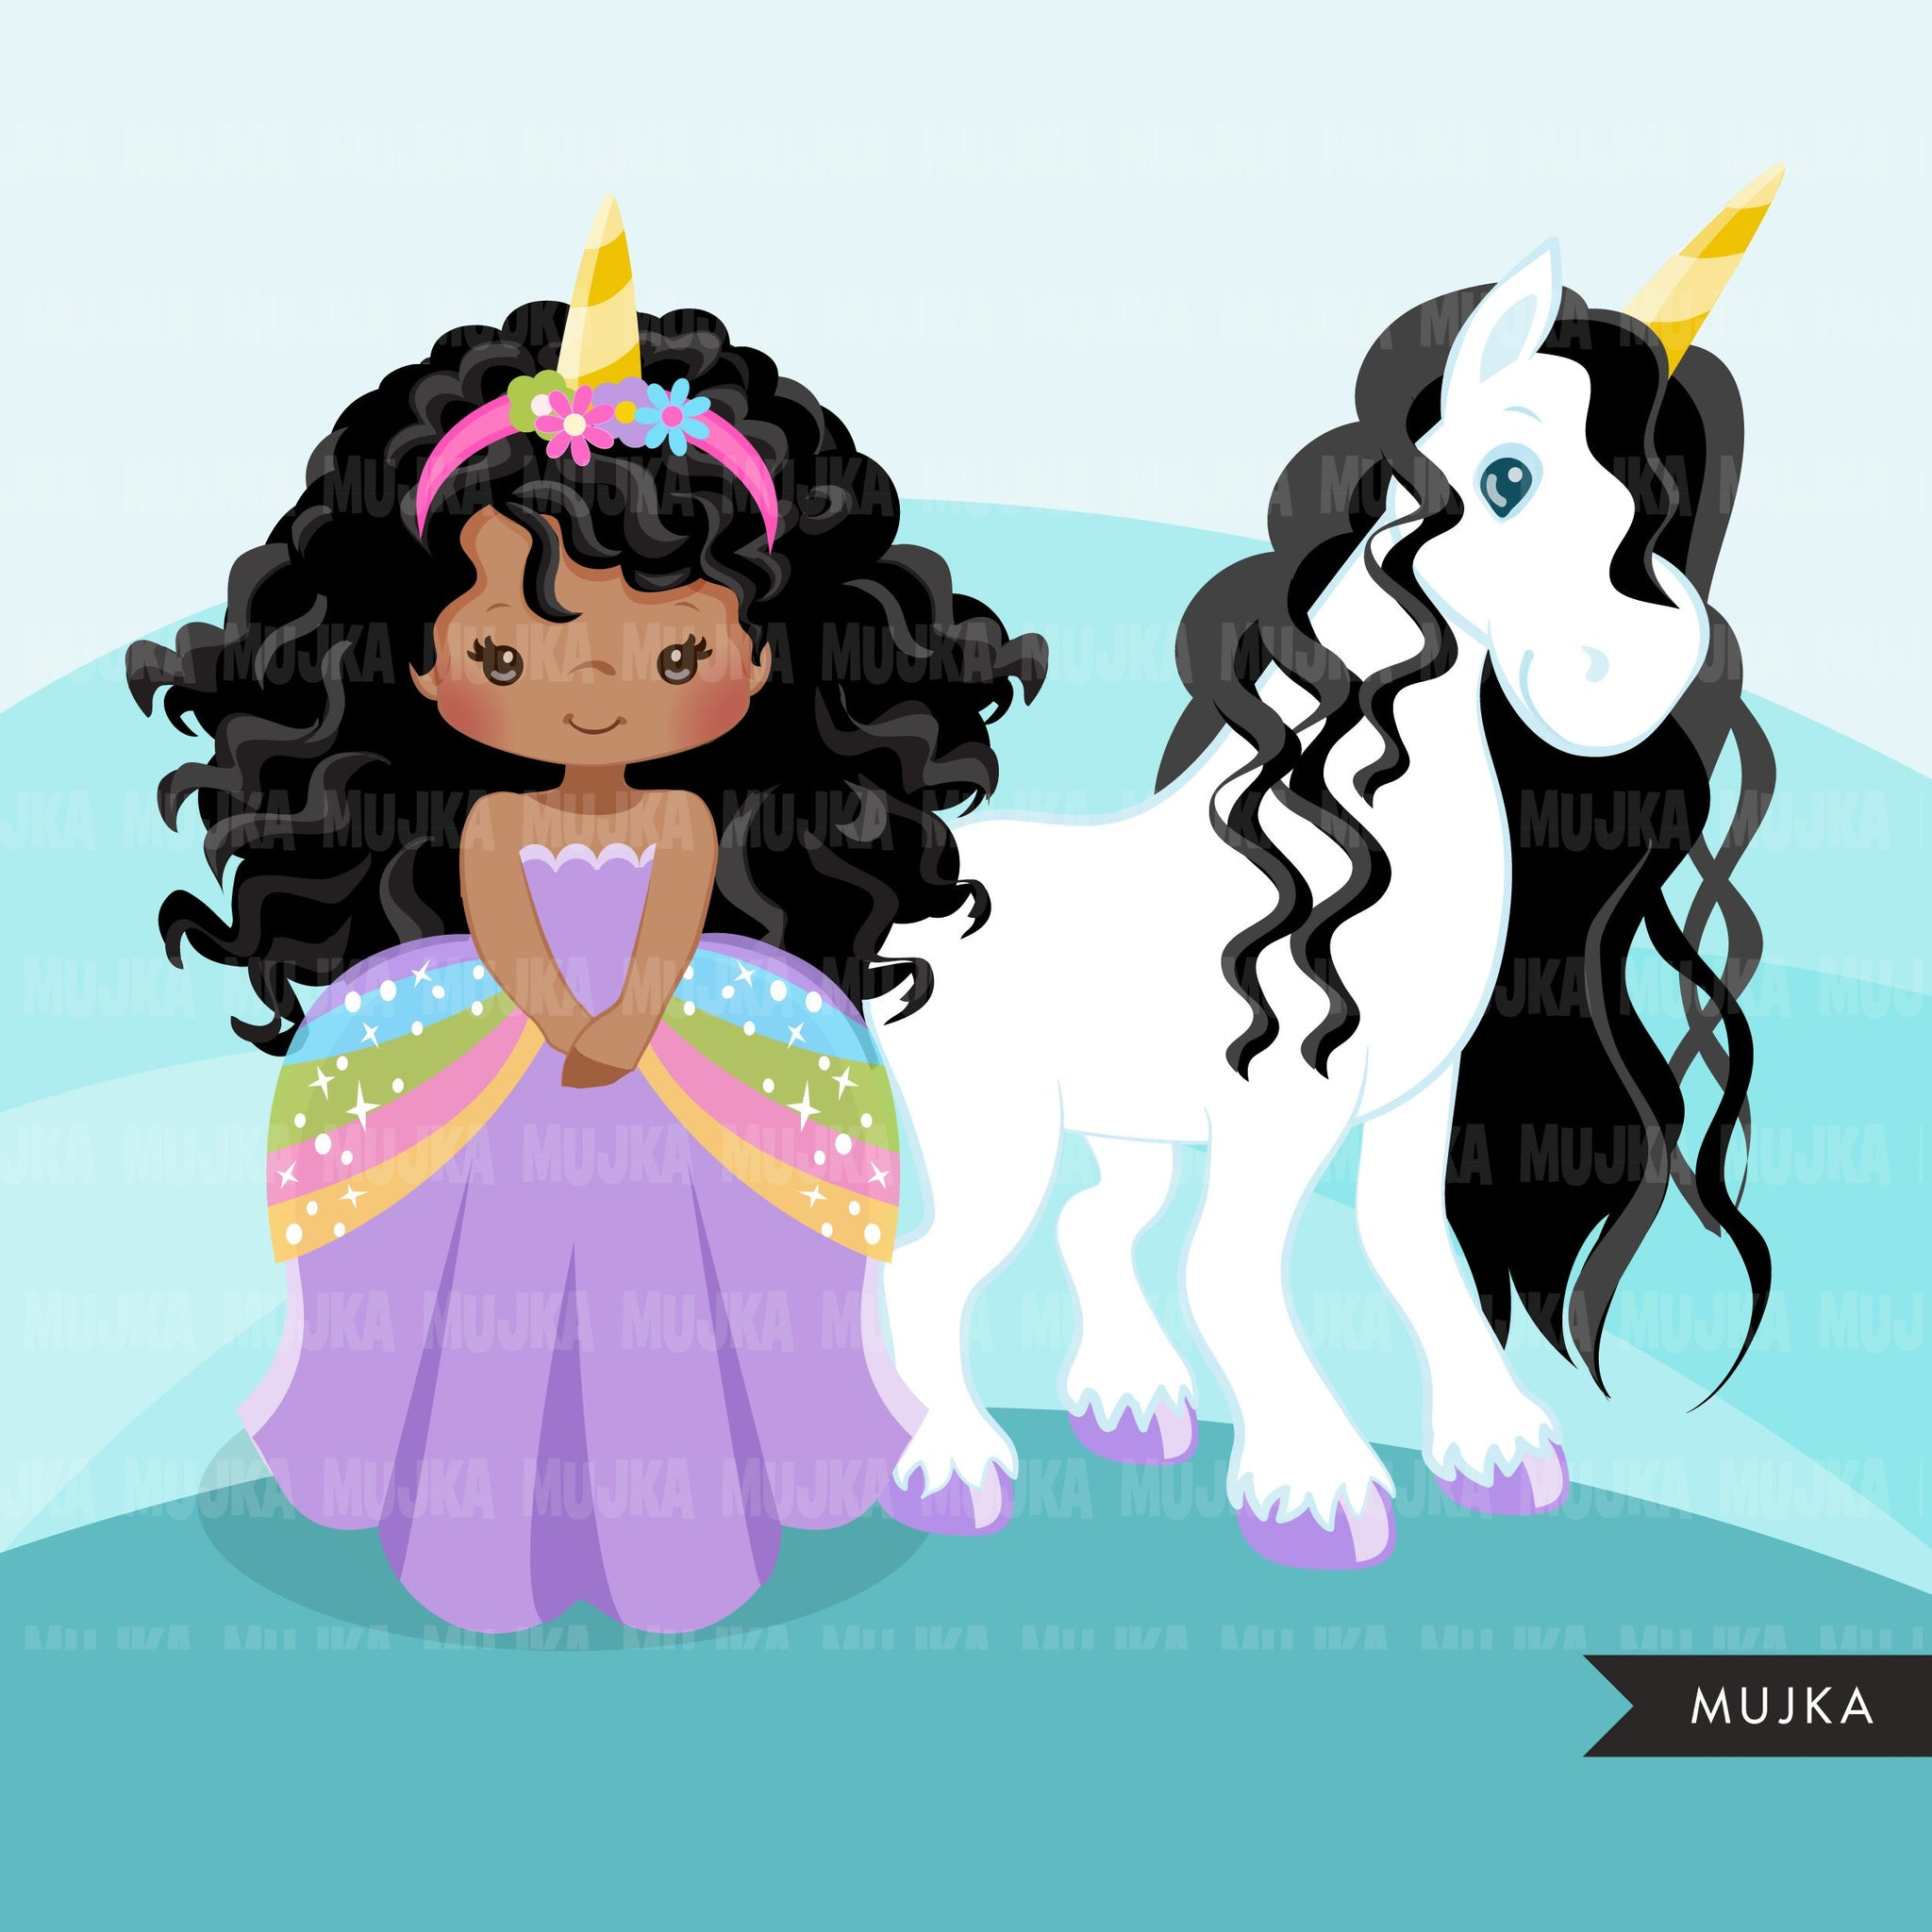 Unicorn clipart, black princess, unicorn gifts, rainbow girl, fairy tale graphics, commercial use clip art